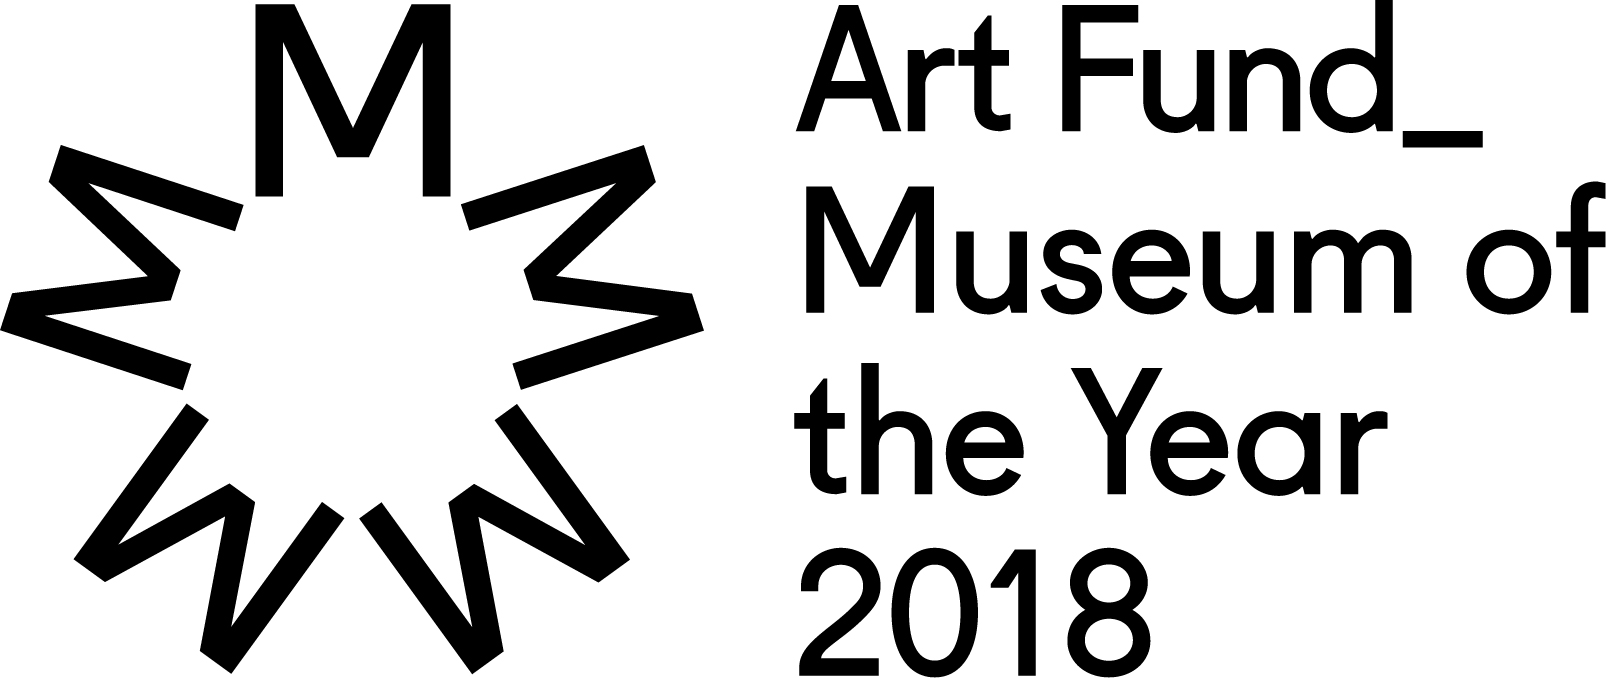 Art Fun Museum of the Year logo